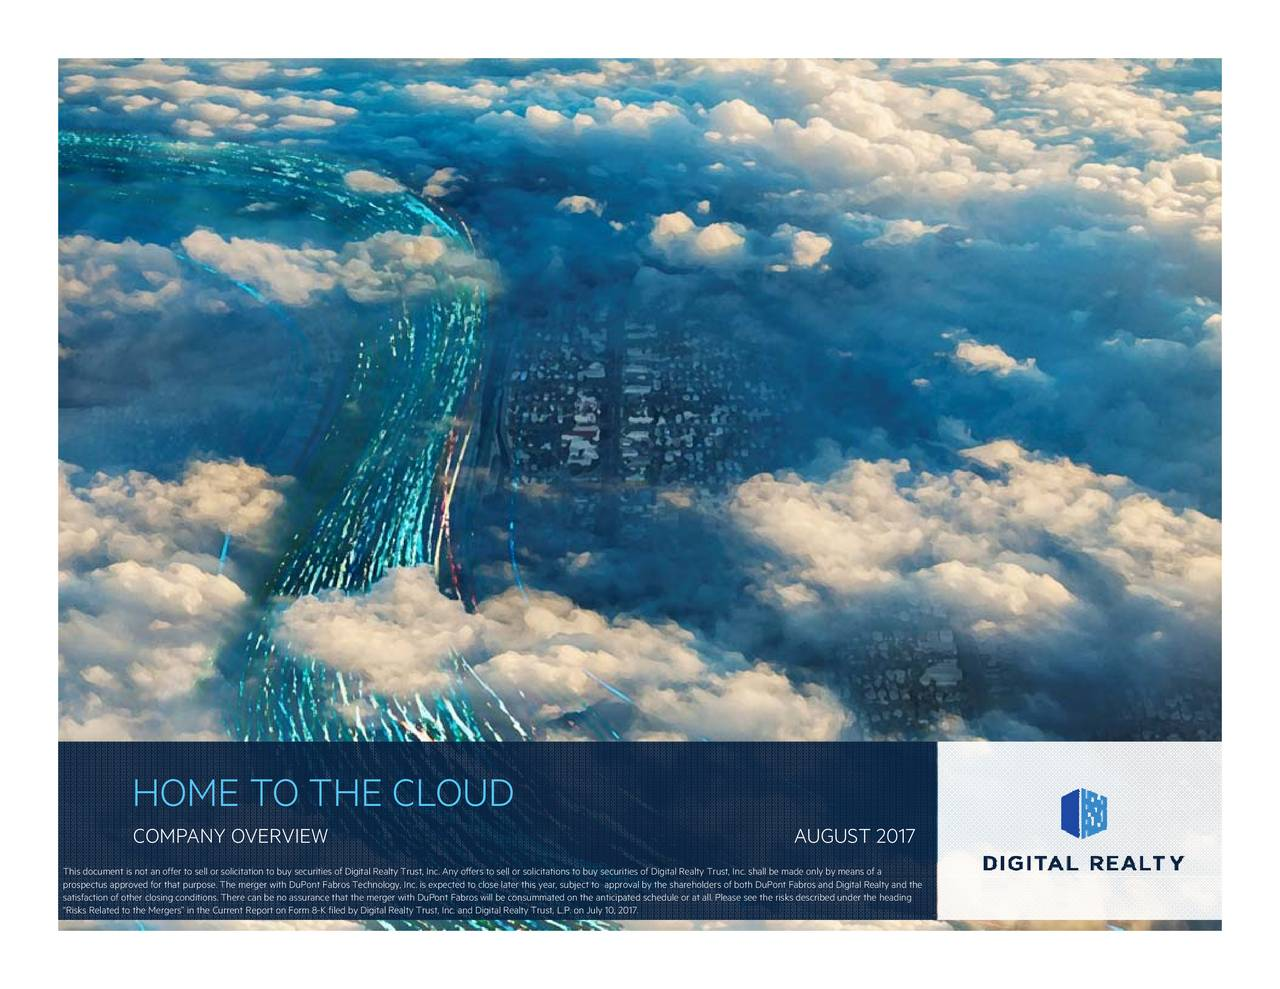 ct to approval by the shareholders of both DuPont Fabros and Digital Realty and the L.P. on July 10, 2017. icitations to buy securities of Digital Realty Trust, Inc. shall be made only by means of a AUGUST 2017 HOME TO THE CLOUDNY OVERVIEW ThipsrdoosstescRftaeisnpenorlohdetoforofntgscllonrdsso.cht.tioueneeecnbwRyibencruosniFtroFabcerthallecdhltyyTgrrigygcn.itiltxneocfnfestntboccreldarleeritlcatholar,Tsrebsjet,on th